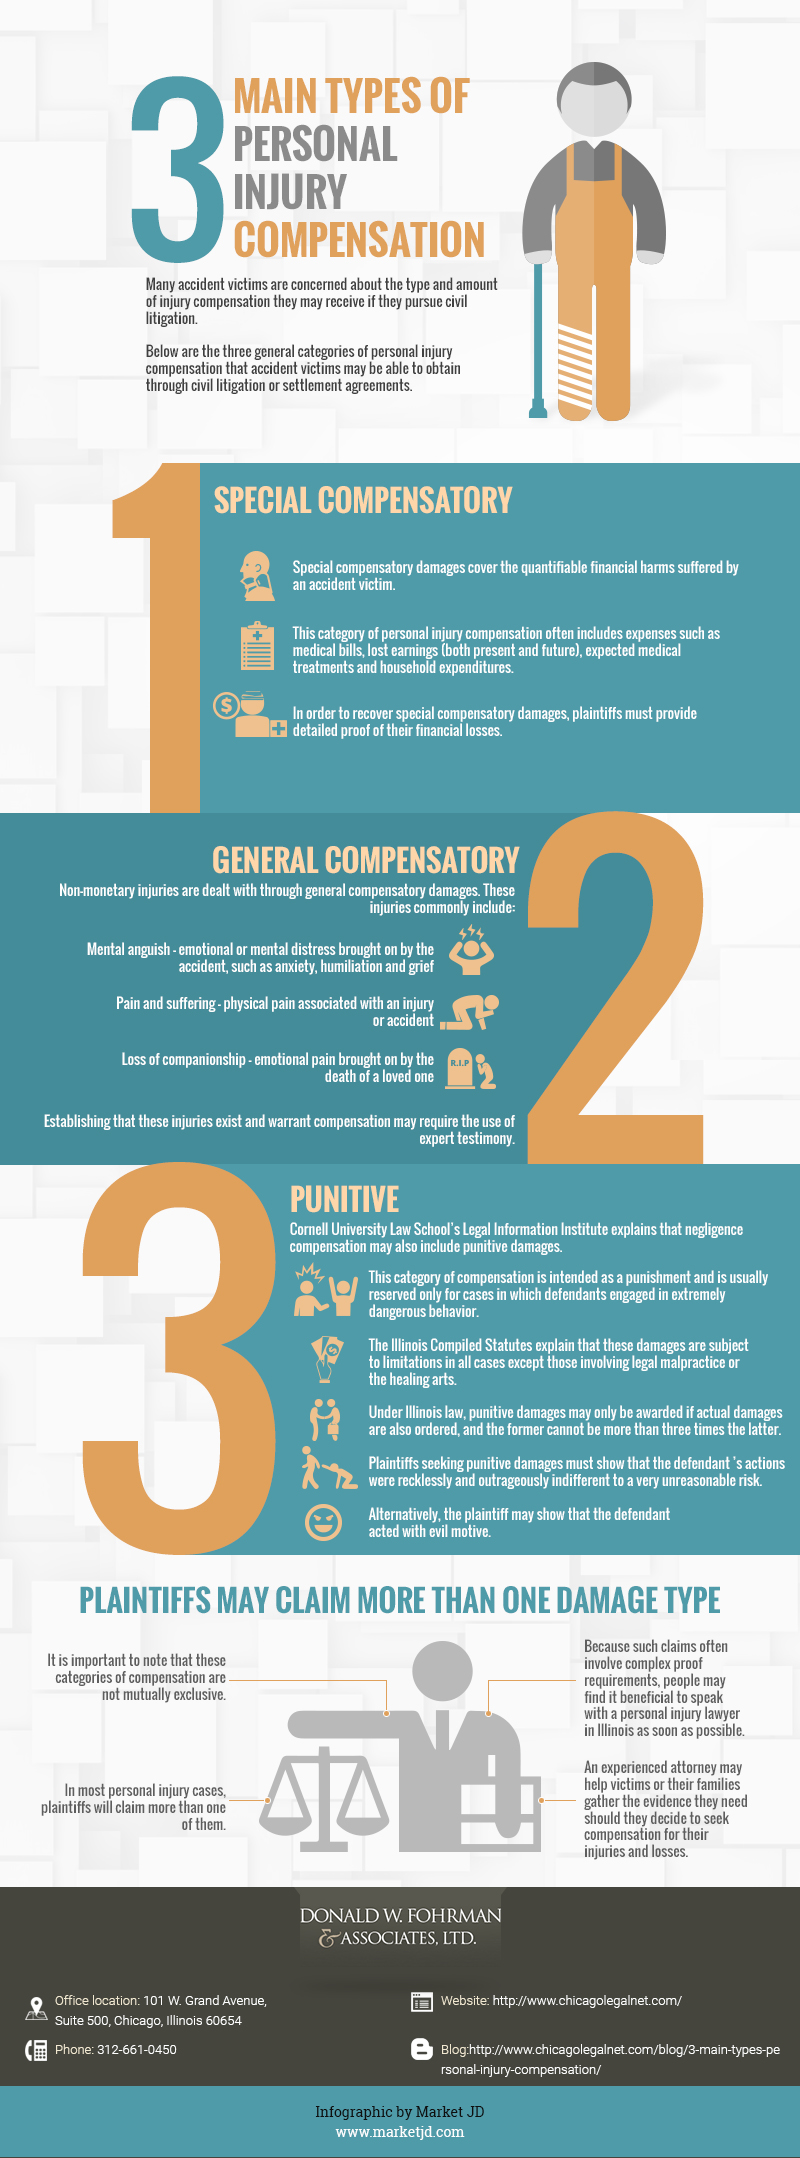 3 Main types of personal injury compensation